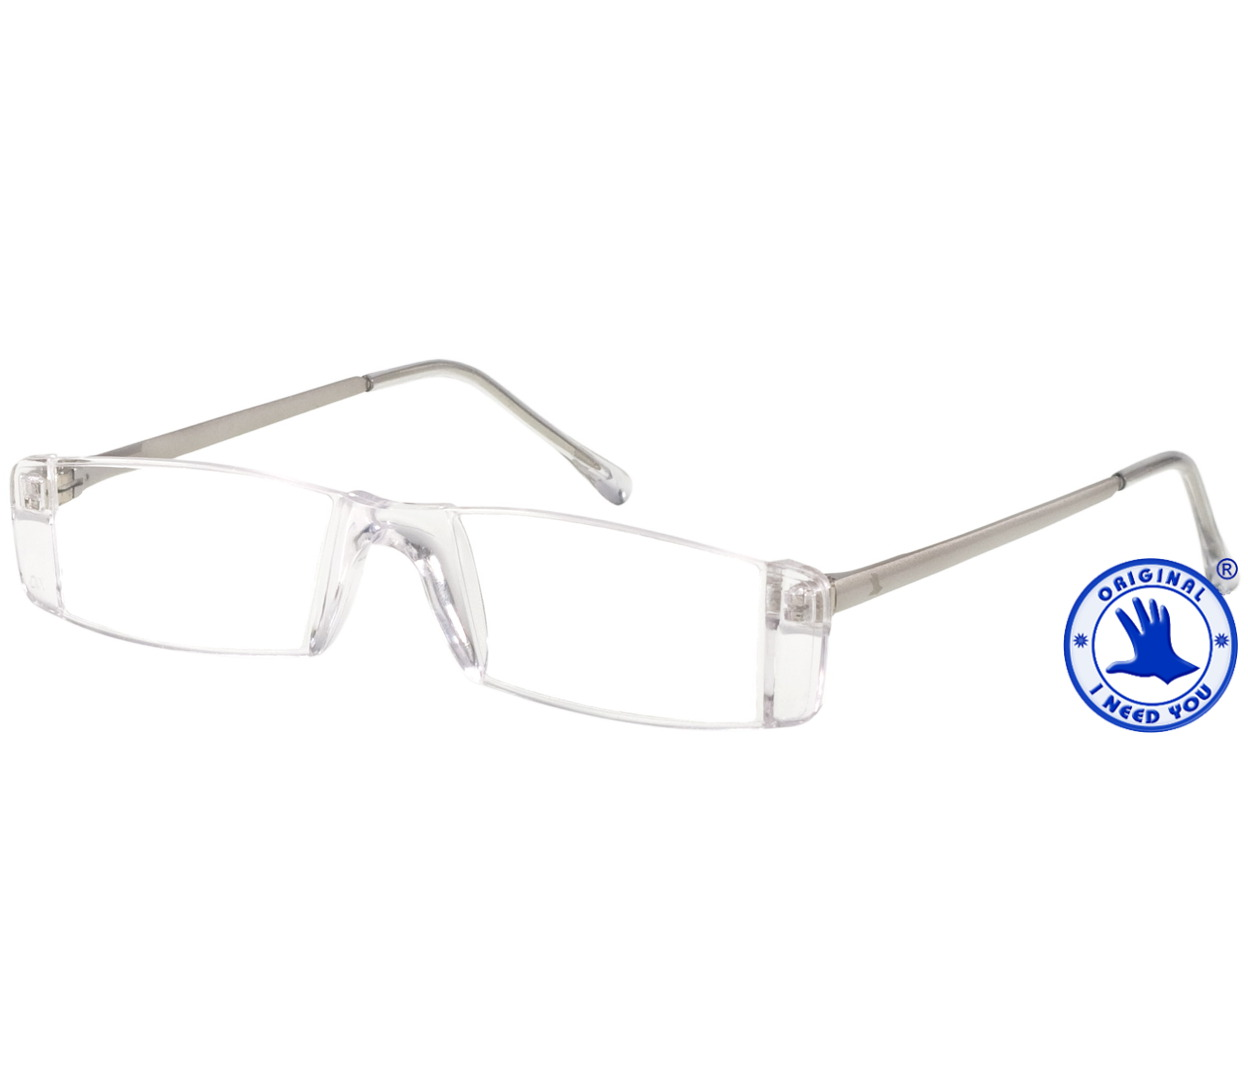 Main Image (Angle) - Champion (Silver) Rimless Reading Glasses